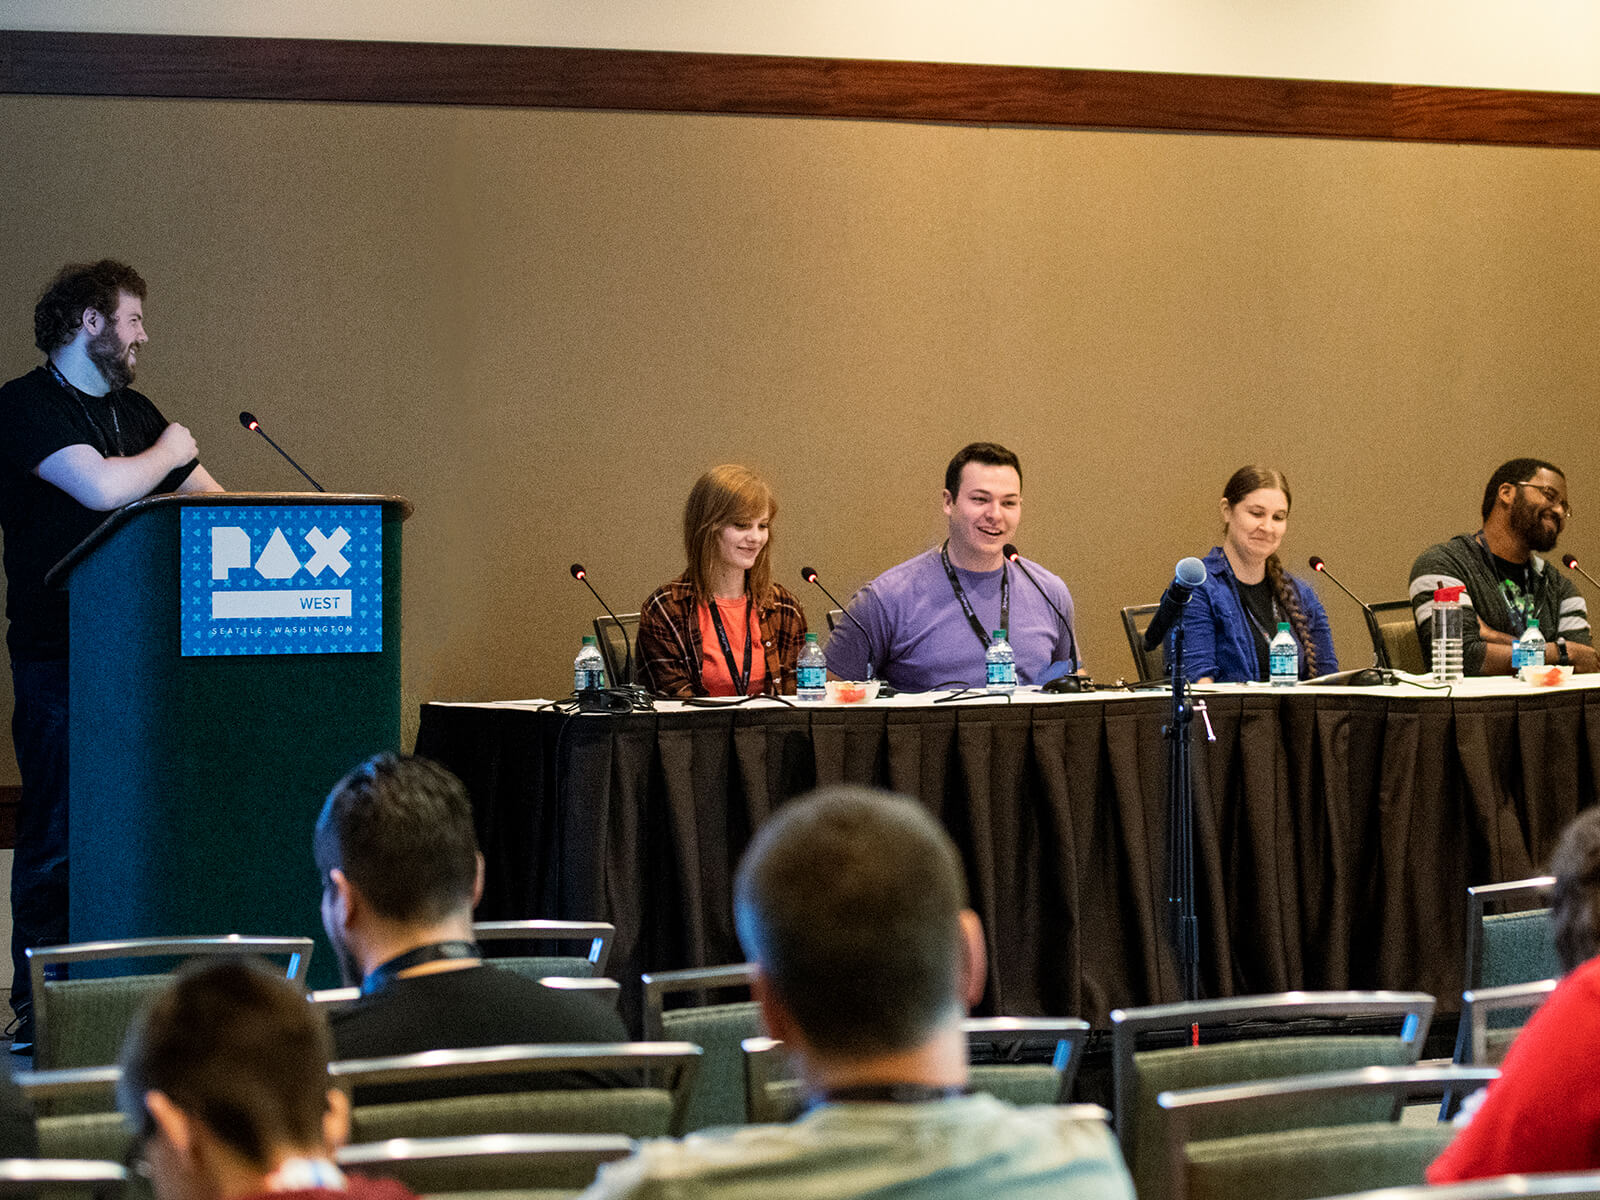 DigiPen alumni Devin Jensen, Lauren Stutzriem, Allan Deutsch, Victoria Smith, and Stephen Scott speaking at PAX West 2018